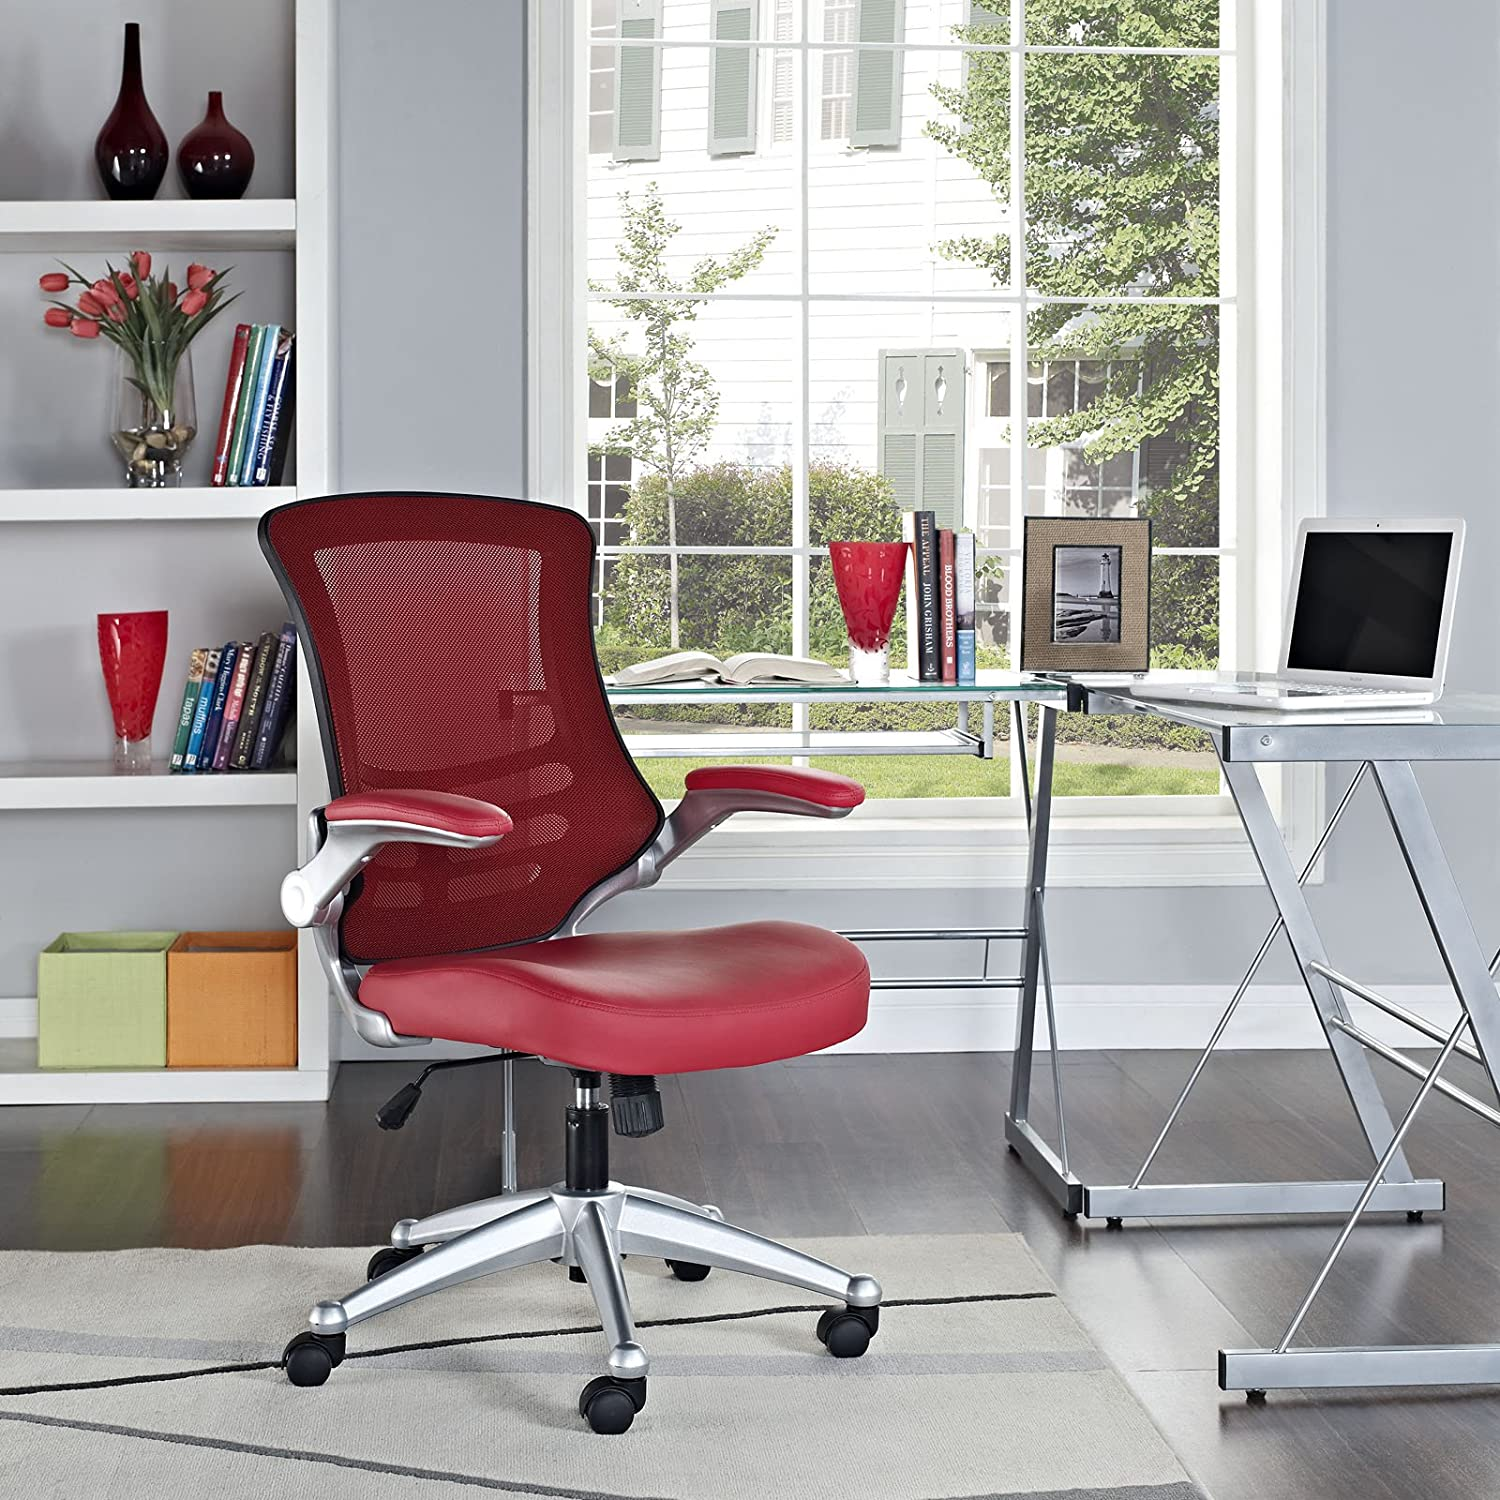 Modway Attainment Mesh Back And Red Vinyl Modern Office Chair With Flip-Up Arms - Ergonomic Desk And Computer Chair